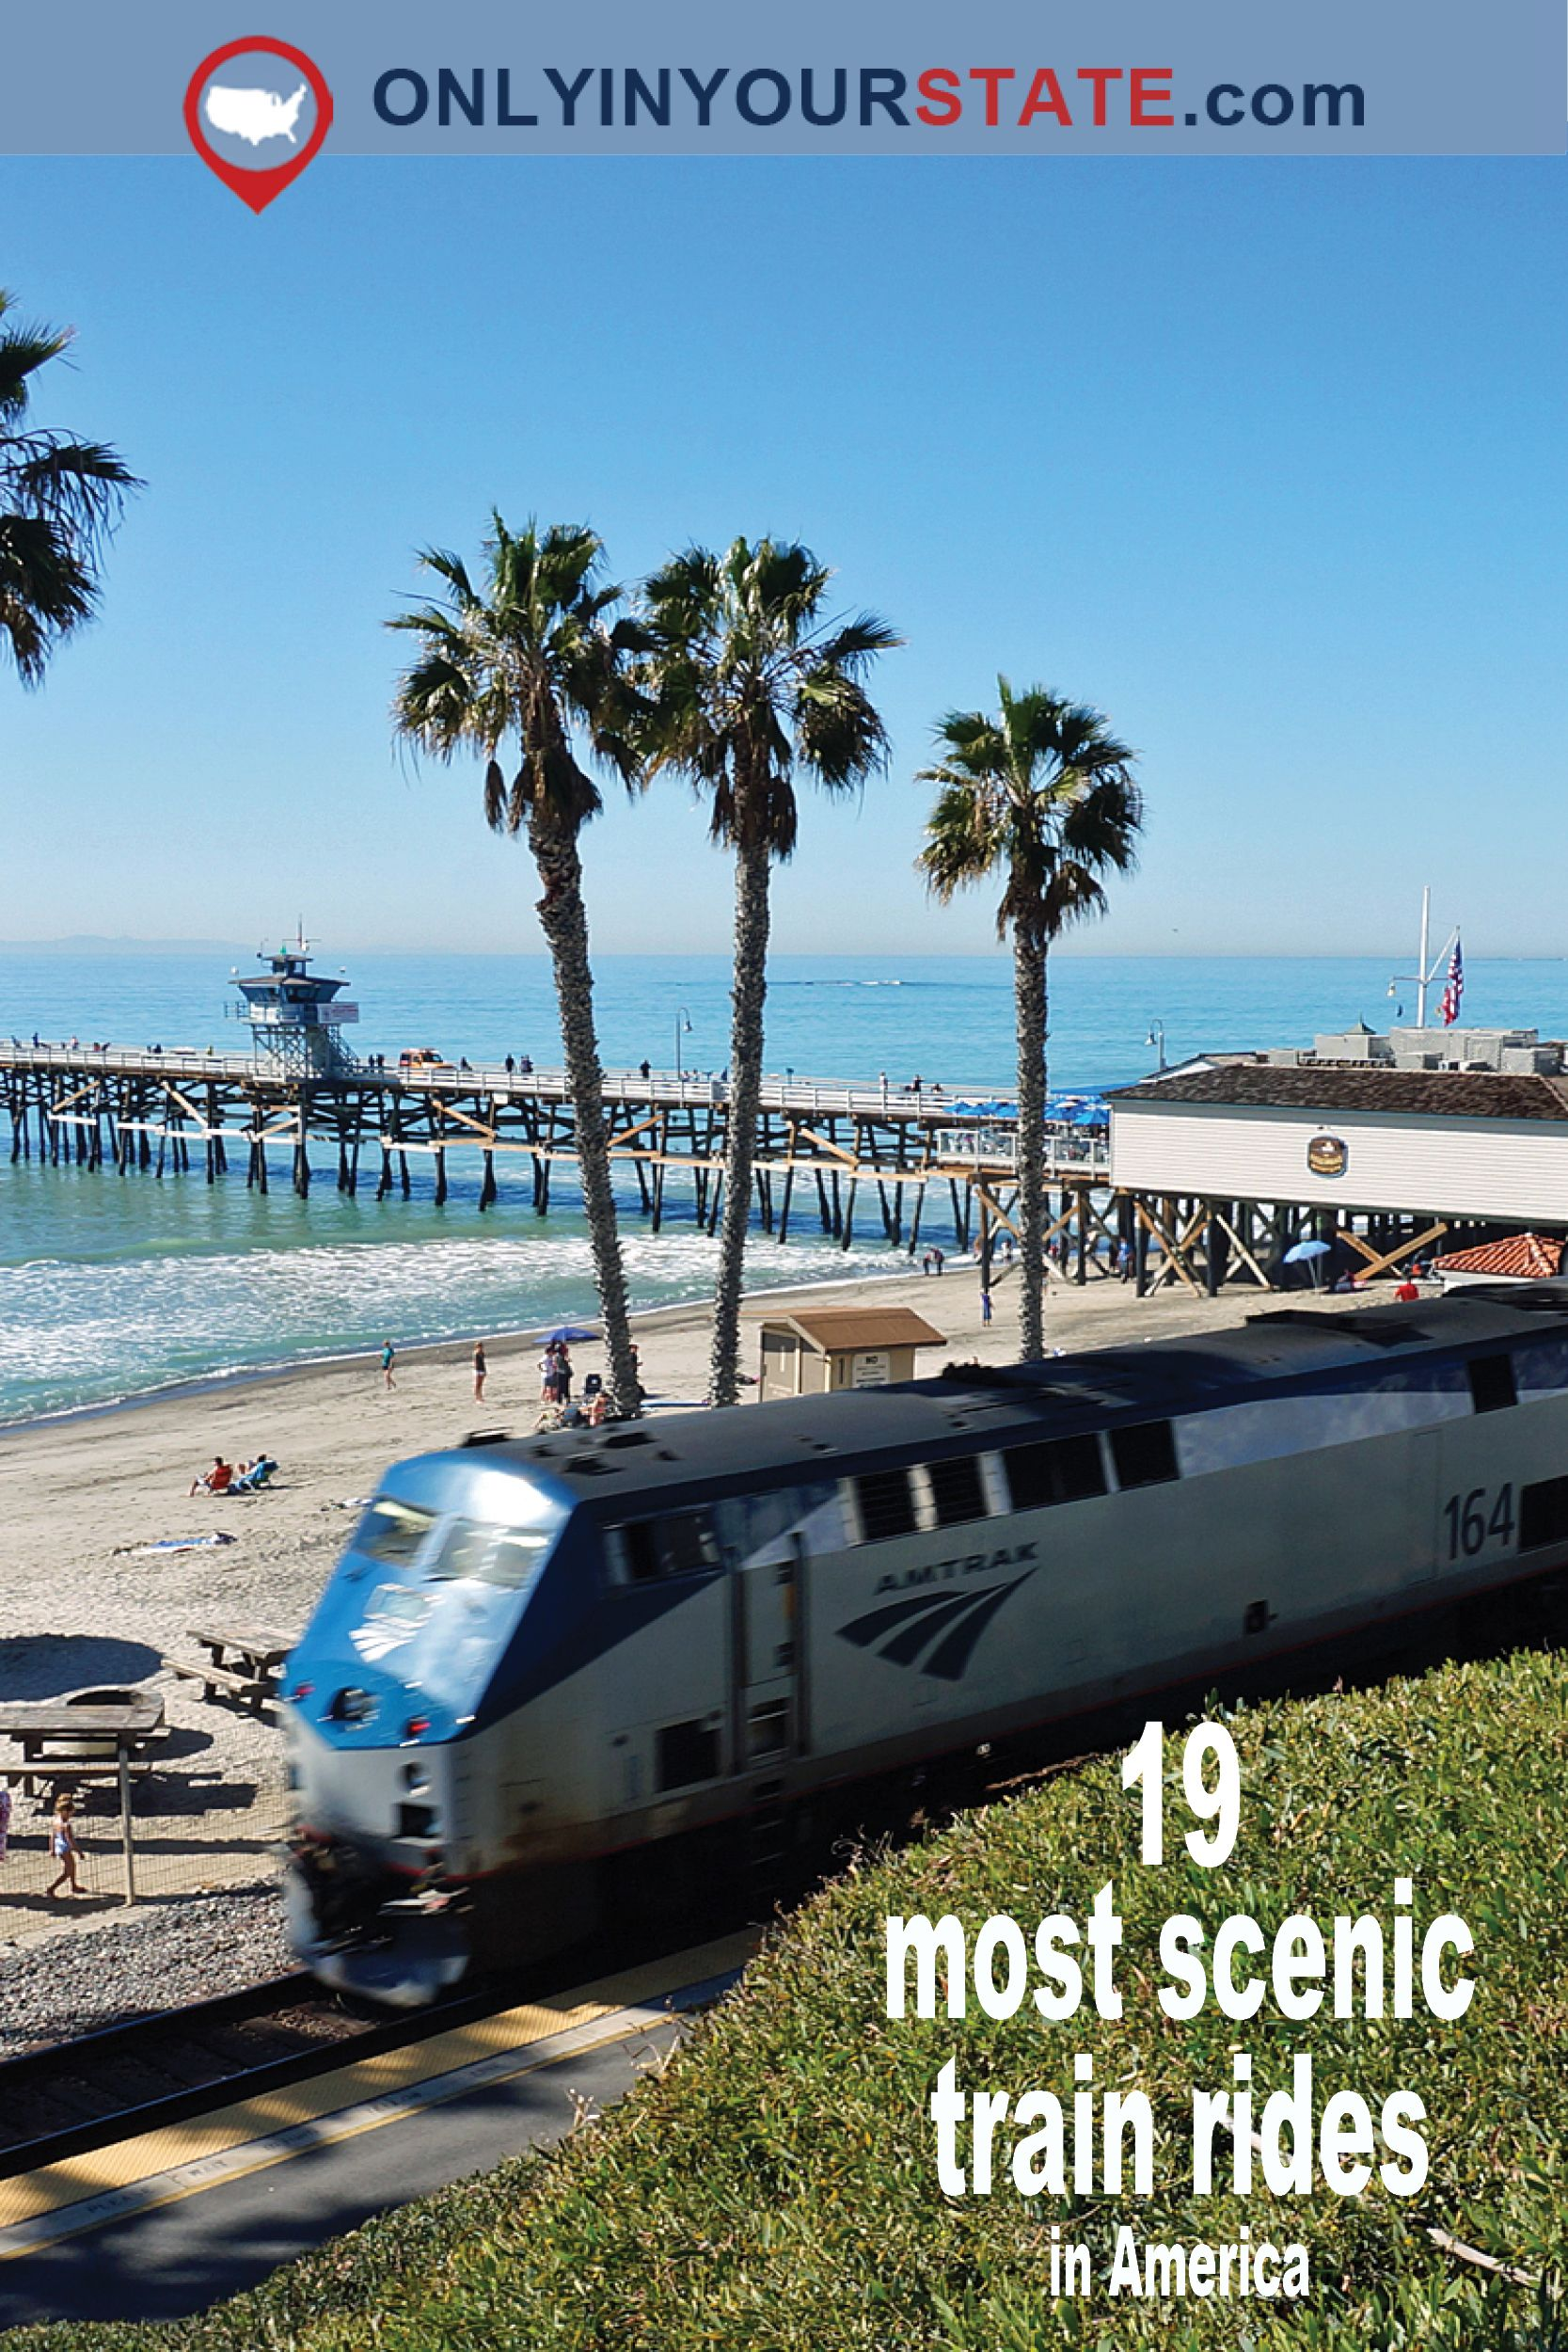 Travel Usa America Scenic Train Rides Trains Across Beautiful Trips Getaways Vacations Overnights Explore